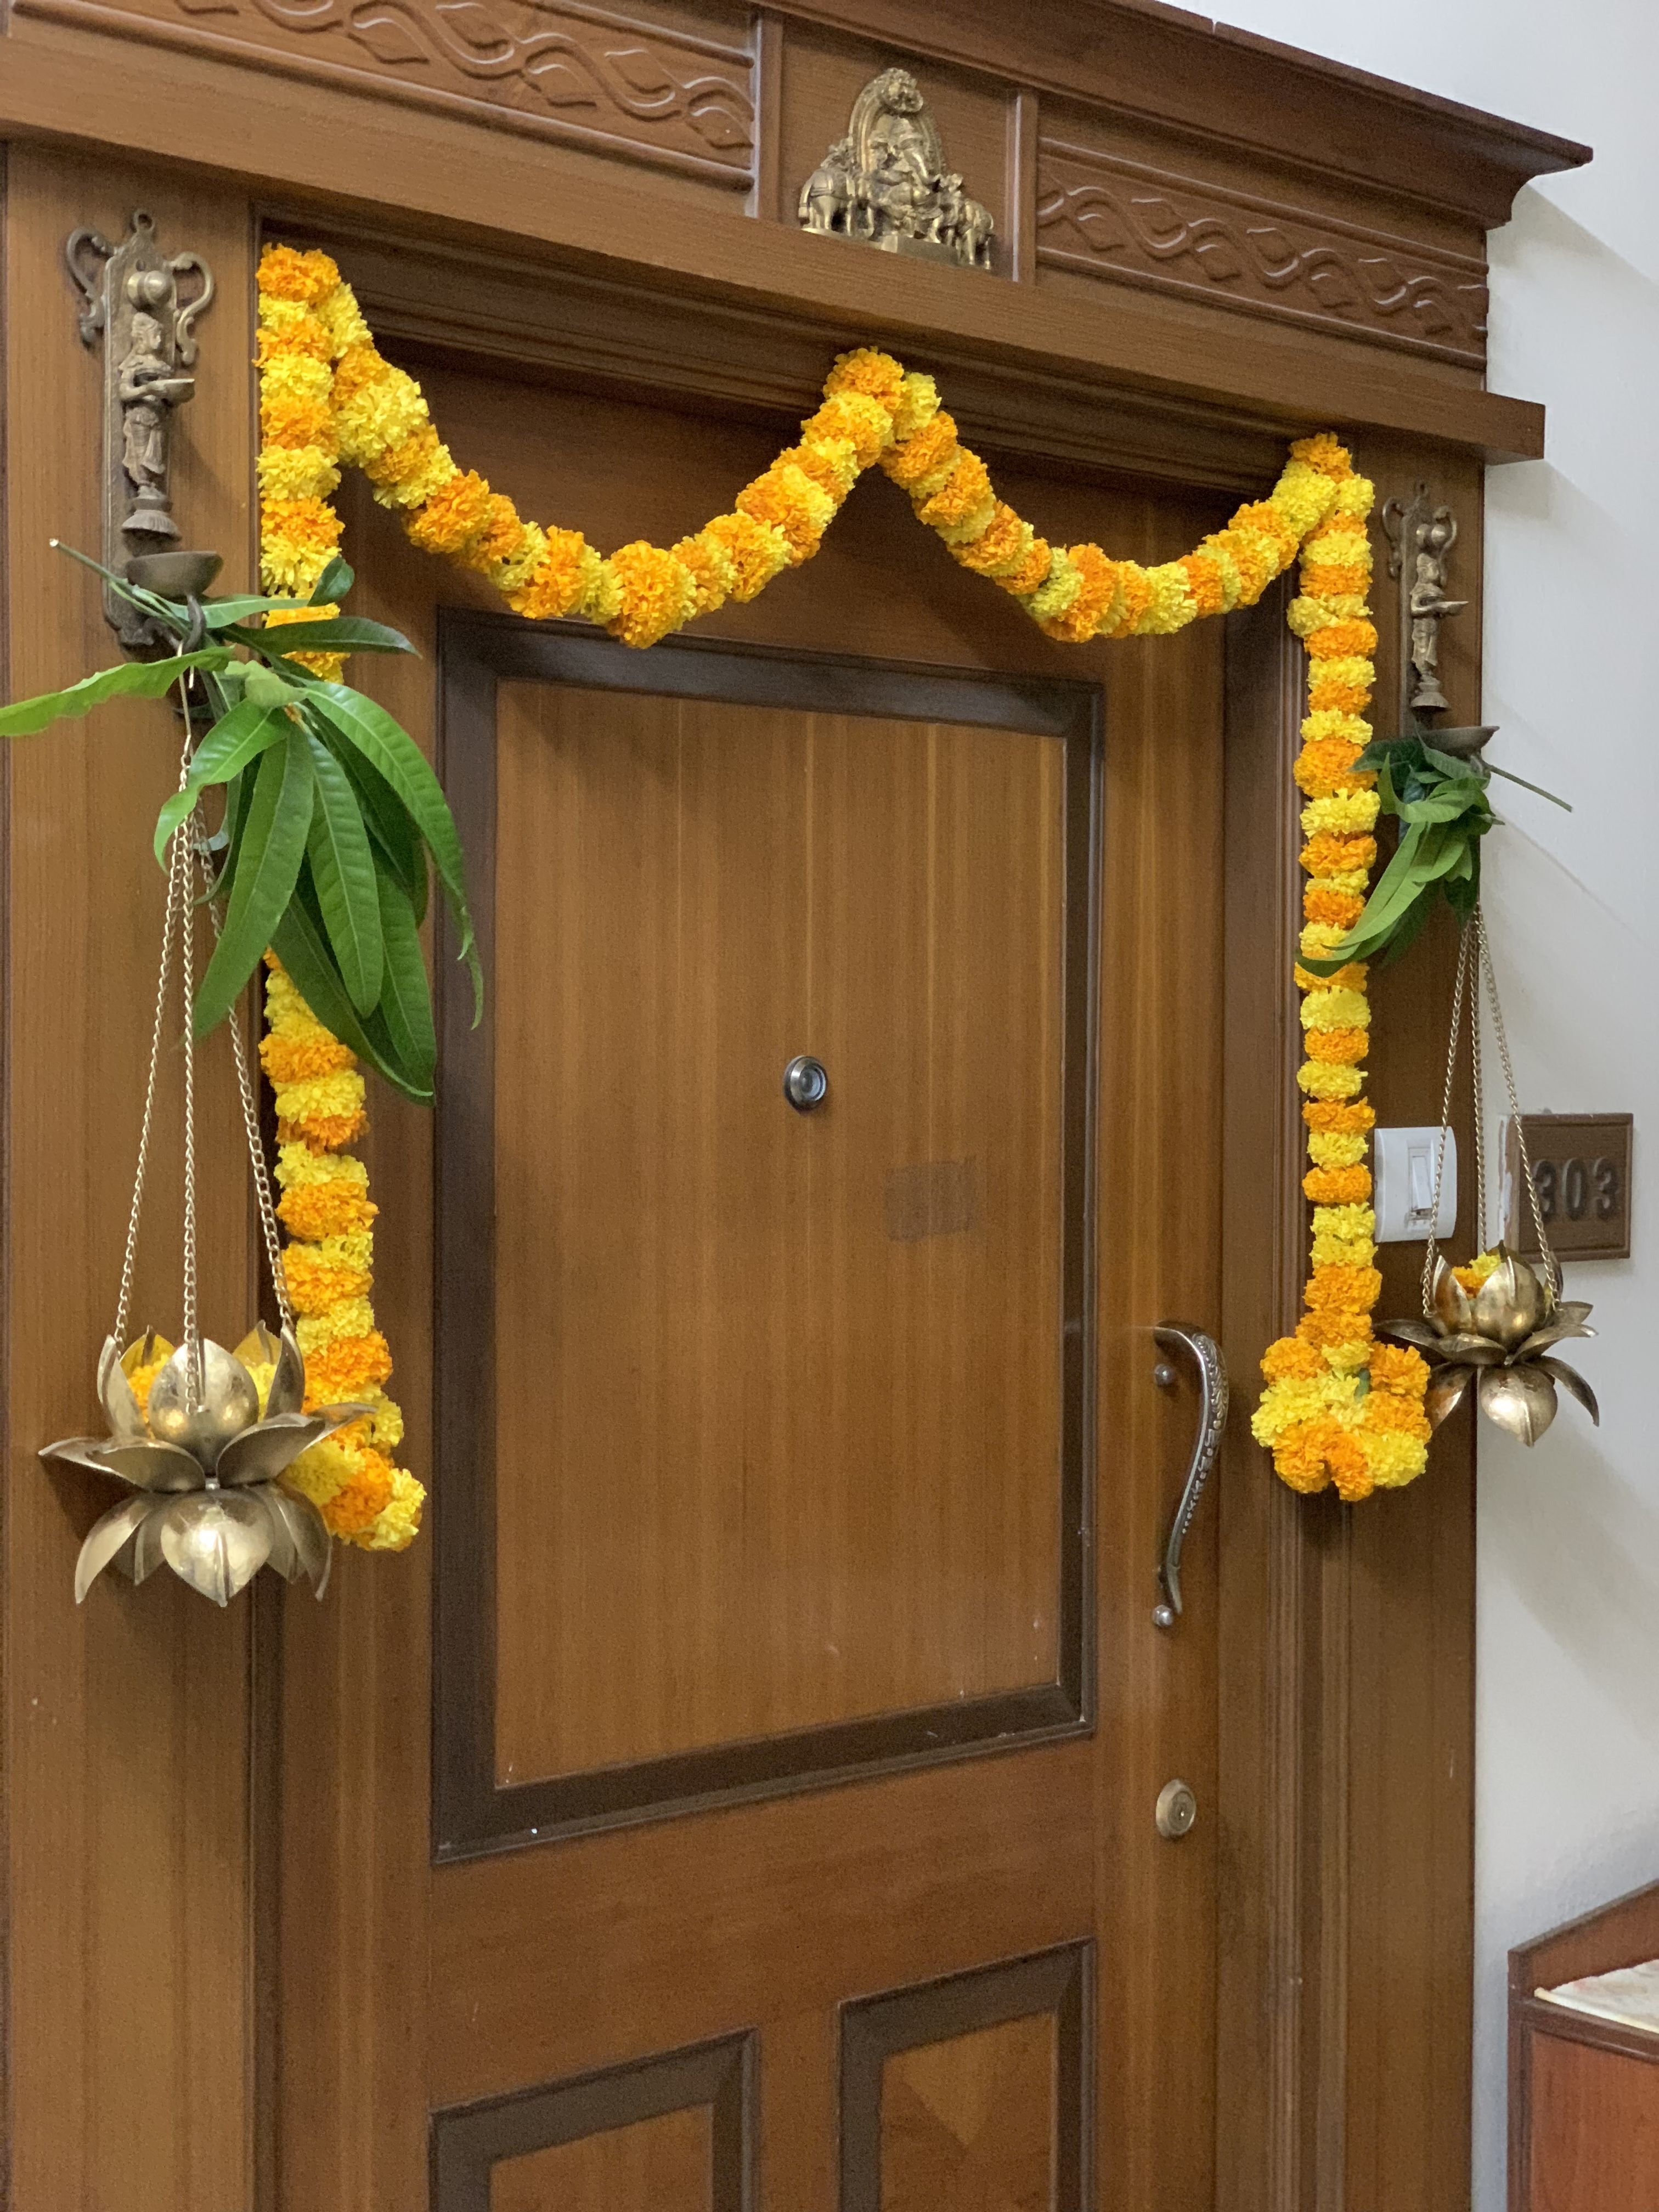 Pin By Ambika On Indian Home Decor Diwali Decorations At Home Entryway Decor Pooja Room Design